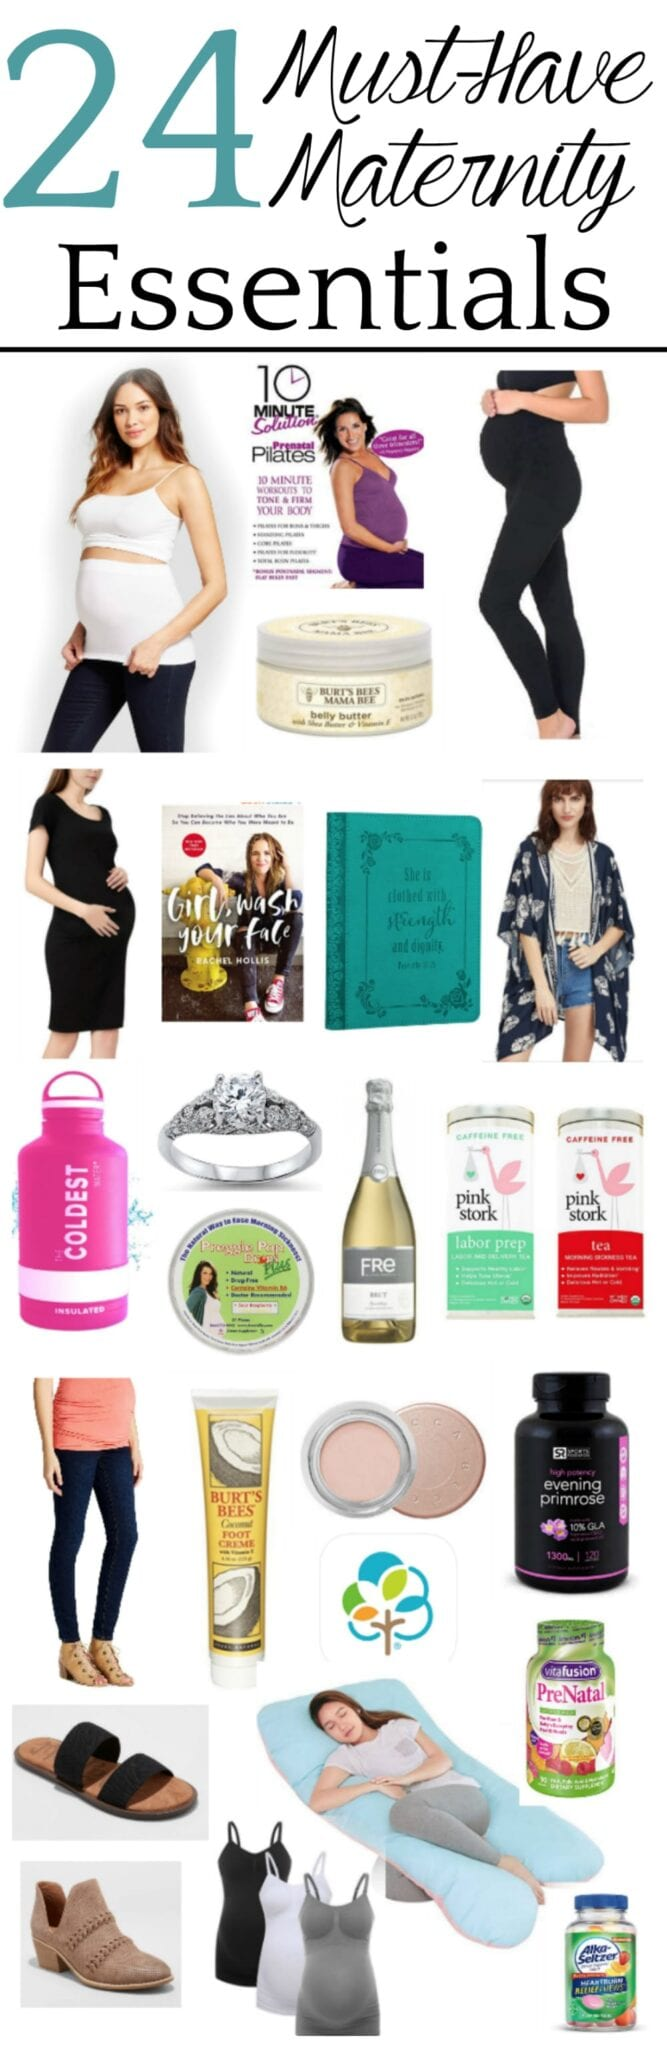 24 tried and true maternity must-haves with fashion, health, beauty, and wellness essentials to make pregnancy easier